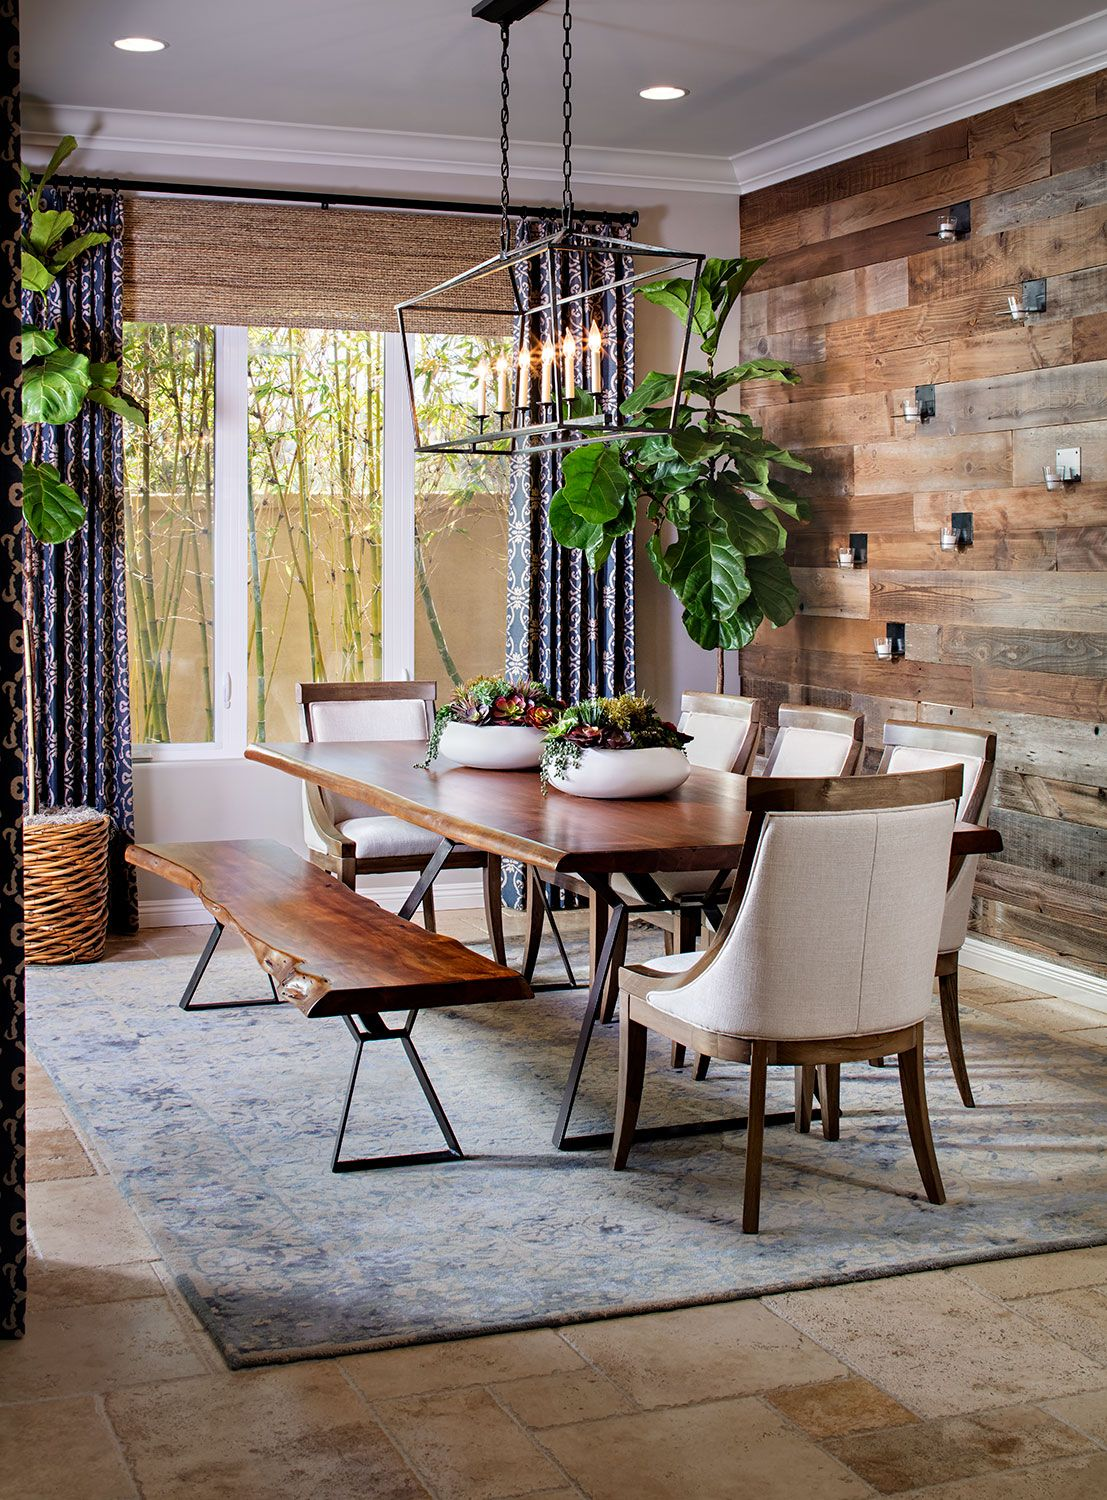 dining similar layout rectangular table with bench plant in the rh pinterest com